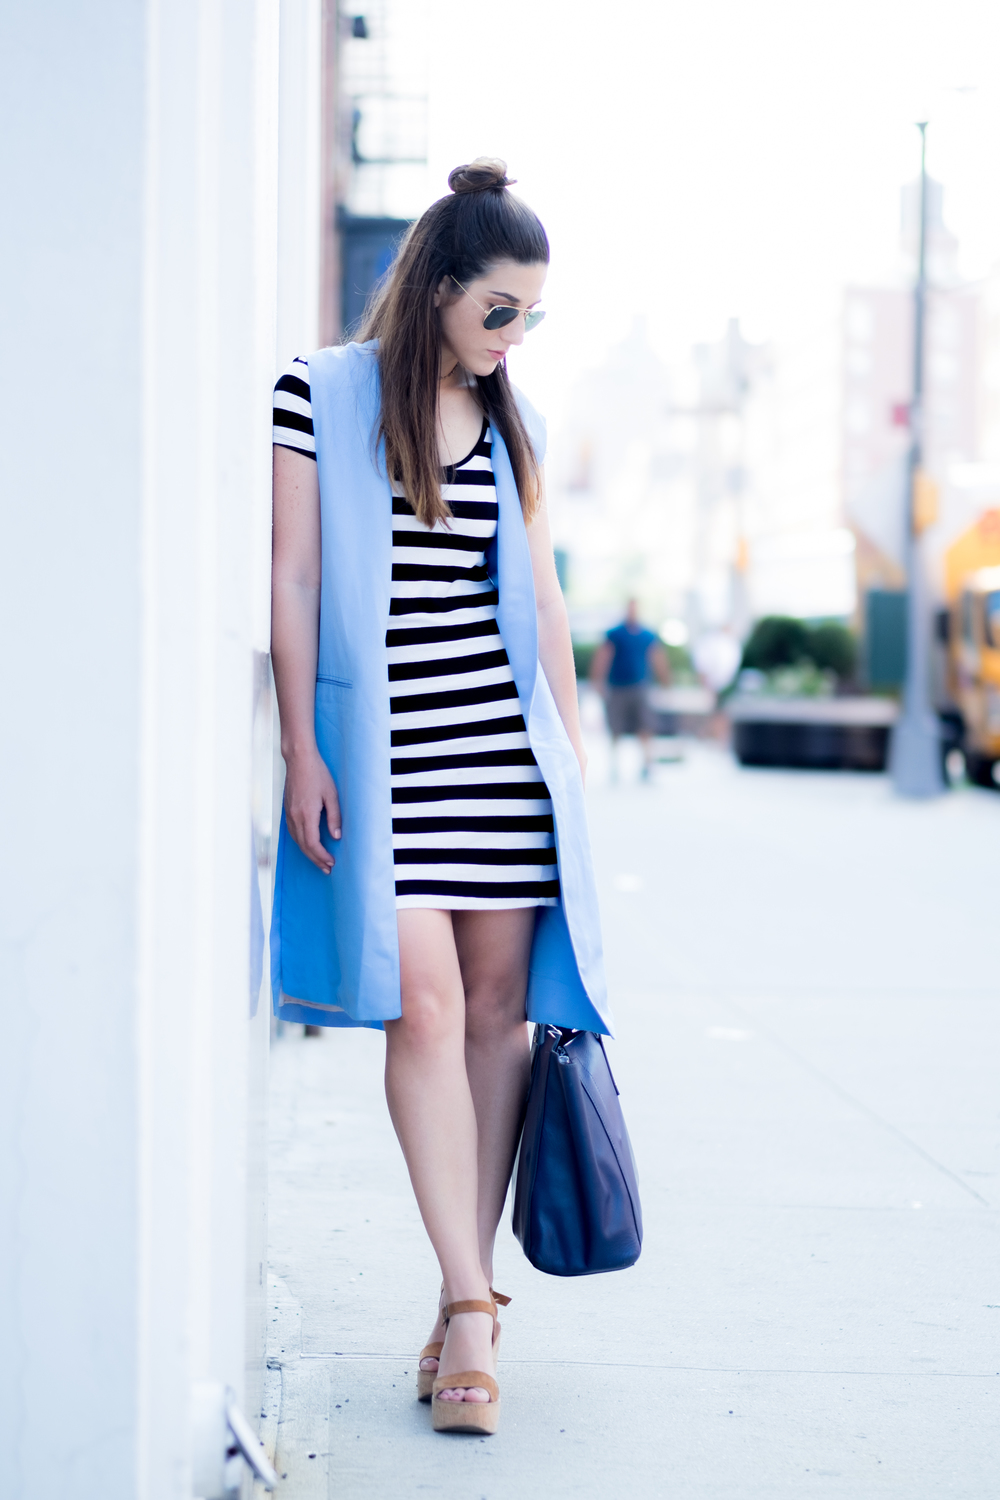 Striped Dress Long Light Blue Vest Louboutins & Love Fashion Blog Esther Santer NYC Street Style Blogger Outfit OOTD Topknot Hair Inspo Girl Women Wedges Dolce Vita Ivanka Trump Bag Soho Tote Aviator Ray-Ban Sunglasses Choker Trendy Summer Photoshoot.jpg